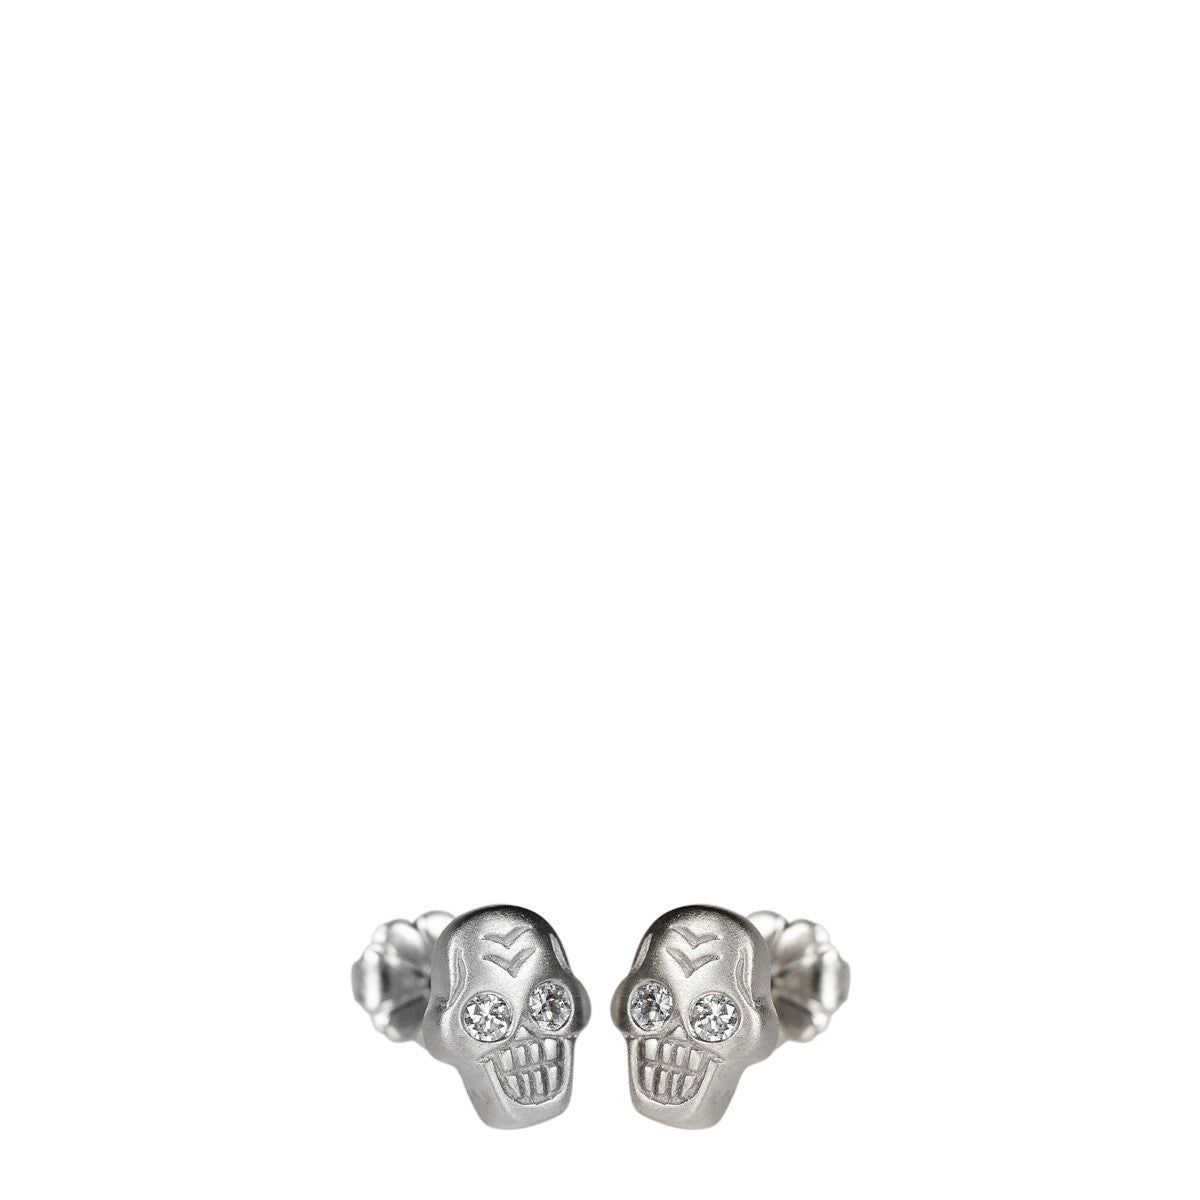 Sterling Silver Tiny Skull Stud Earrings with White Diamond Eyes